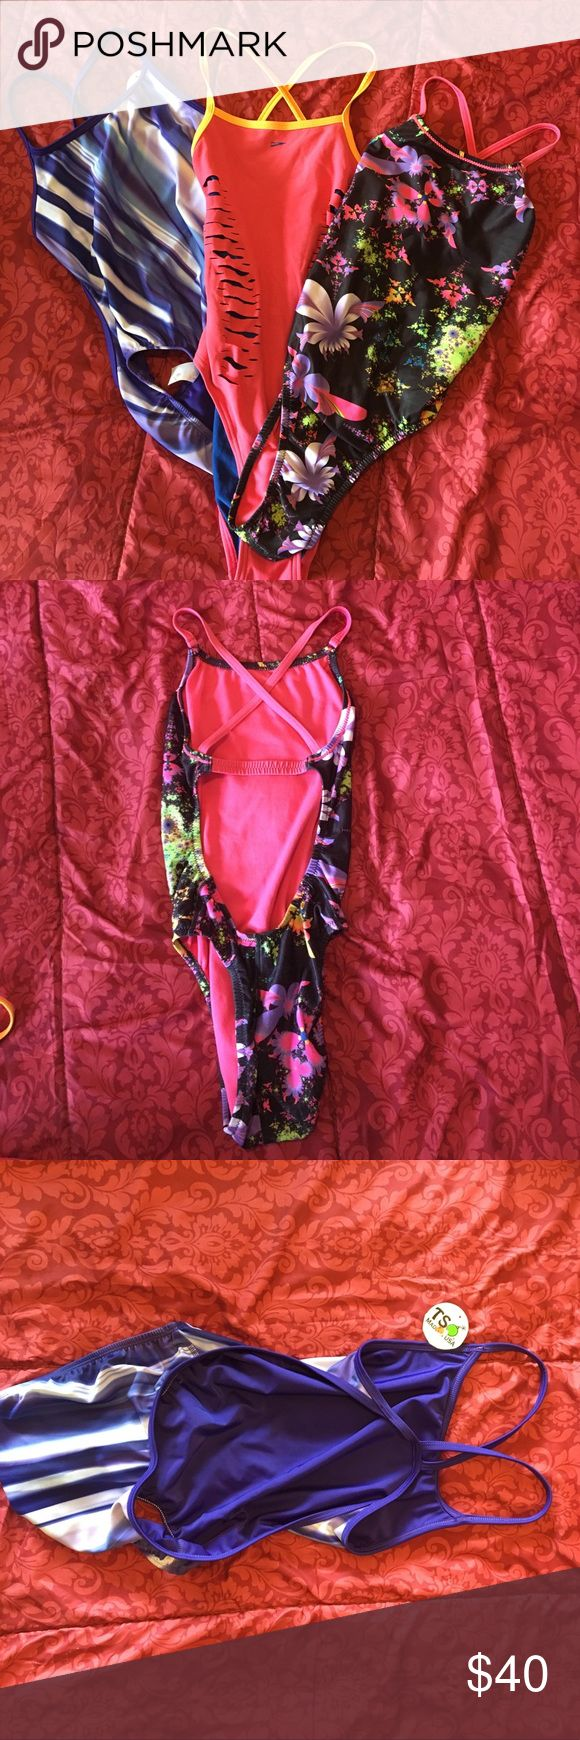 3 practice swimsuits!!! (NWT/NWOT) Selling 3 for $40, 2 for $28, or $15 each. Message me!                      1) black floral speedo (size 28) NWOT.                                      2) NWT TS purple/swirly (size 28).                                             3) pink speedo, open back, with side cut outs-used (size 28/30) Speedo Swim One Pieces